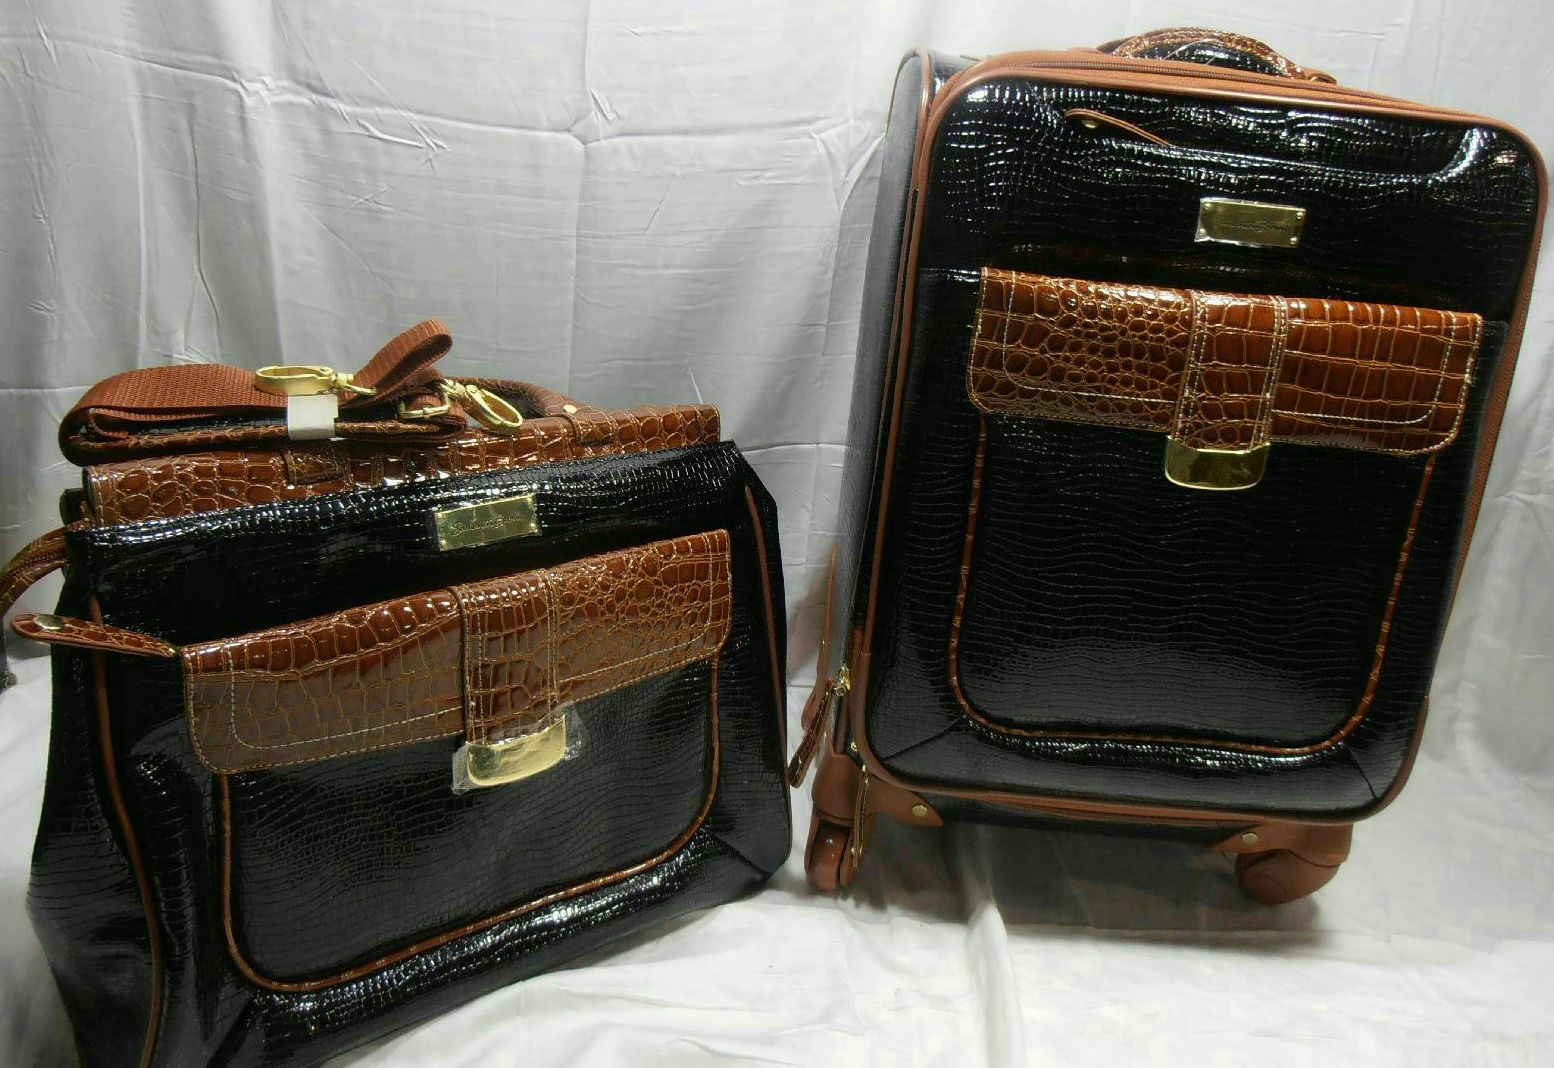 Samantha Brown Luggage Qvc: Samantha Brown First Class Collection 2-piece Set Luggage